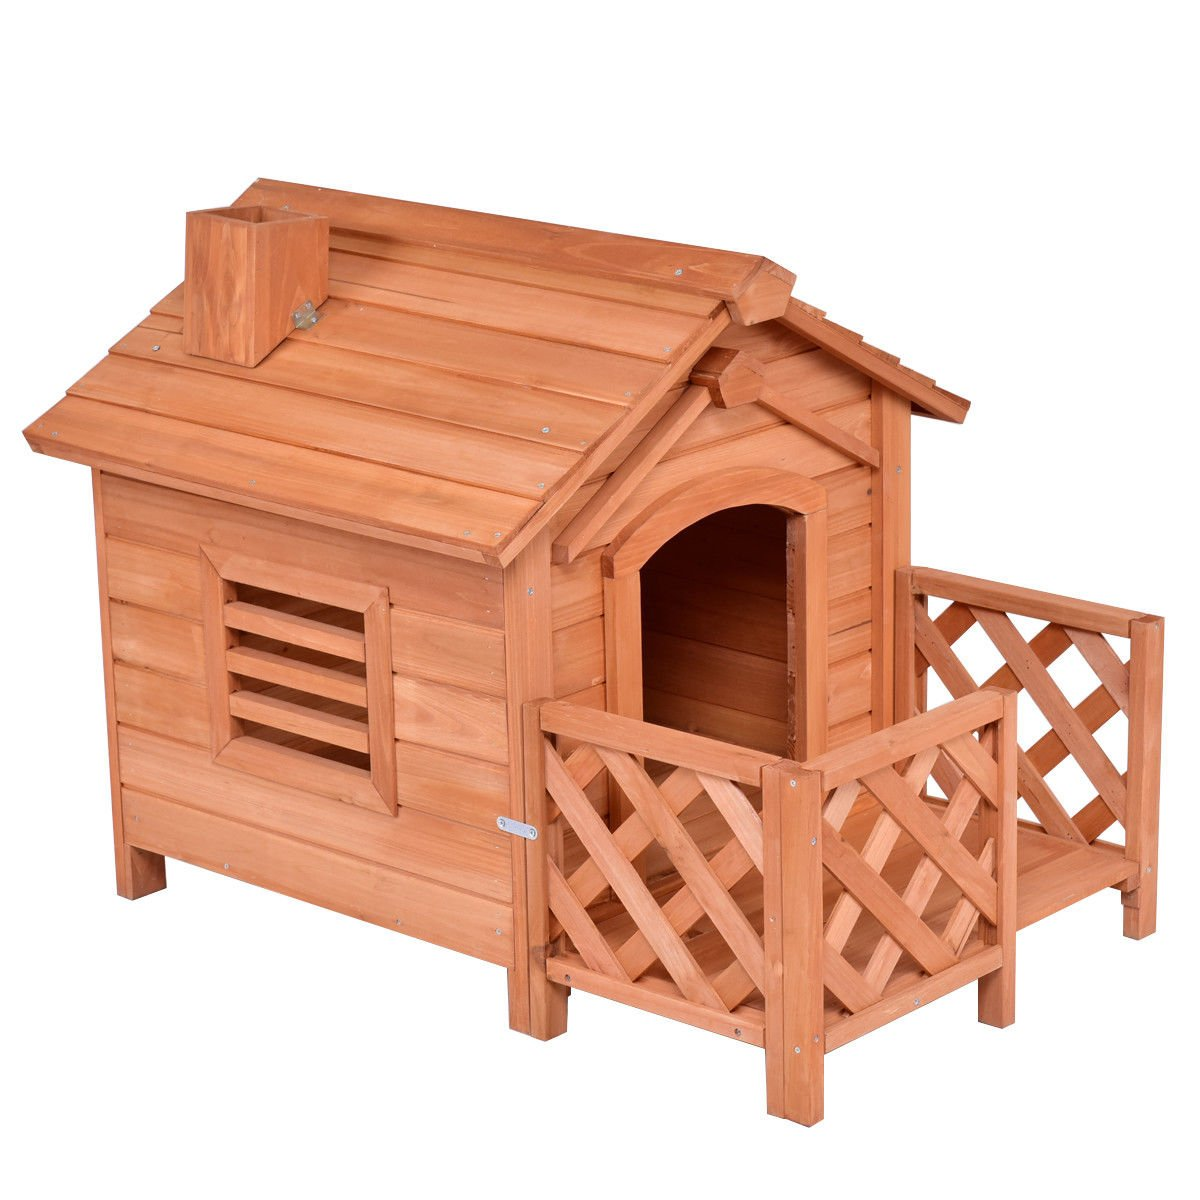 Tangkula Pet House Wood Outdoor Dog House Kennel Crates with Porch